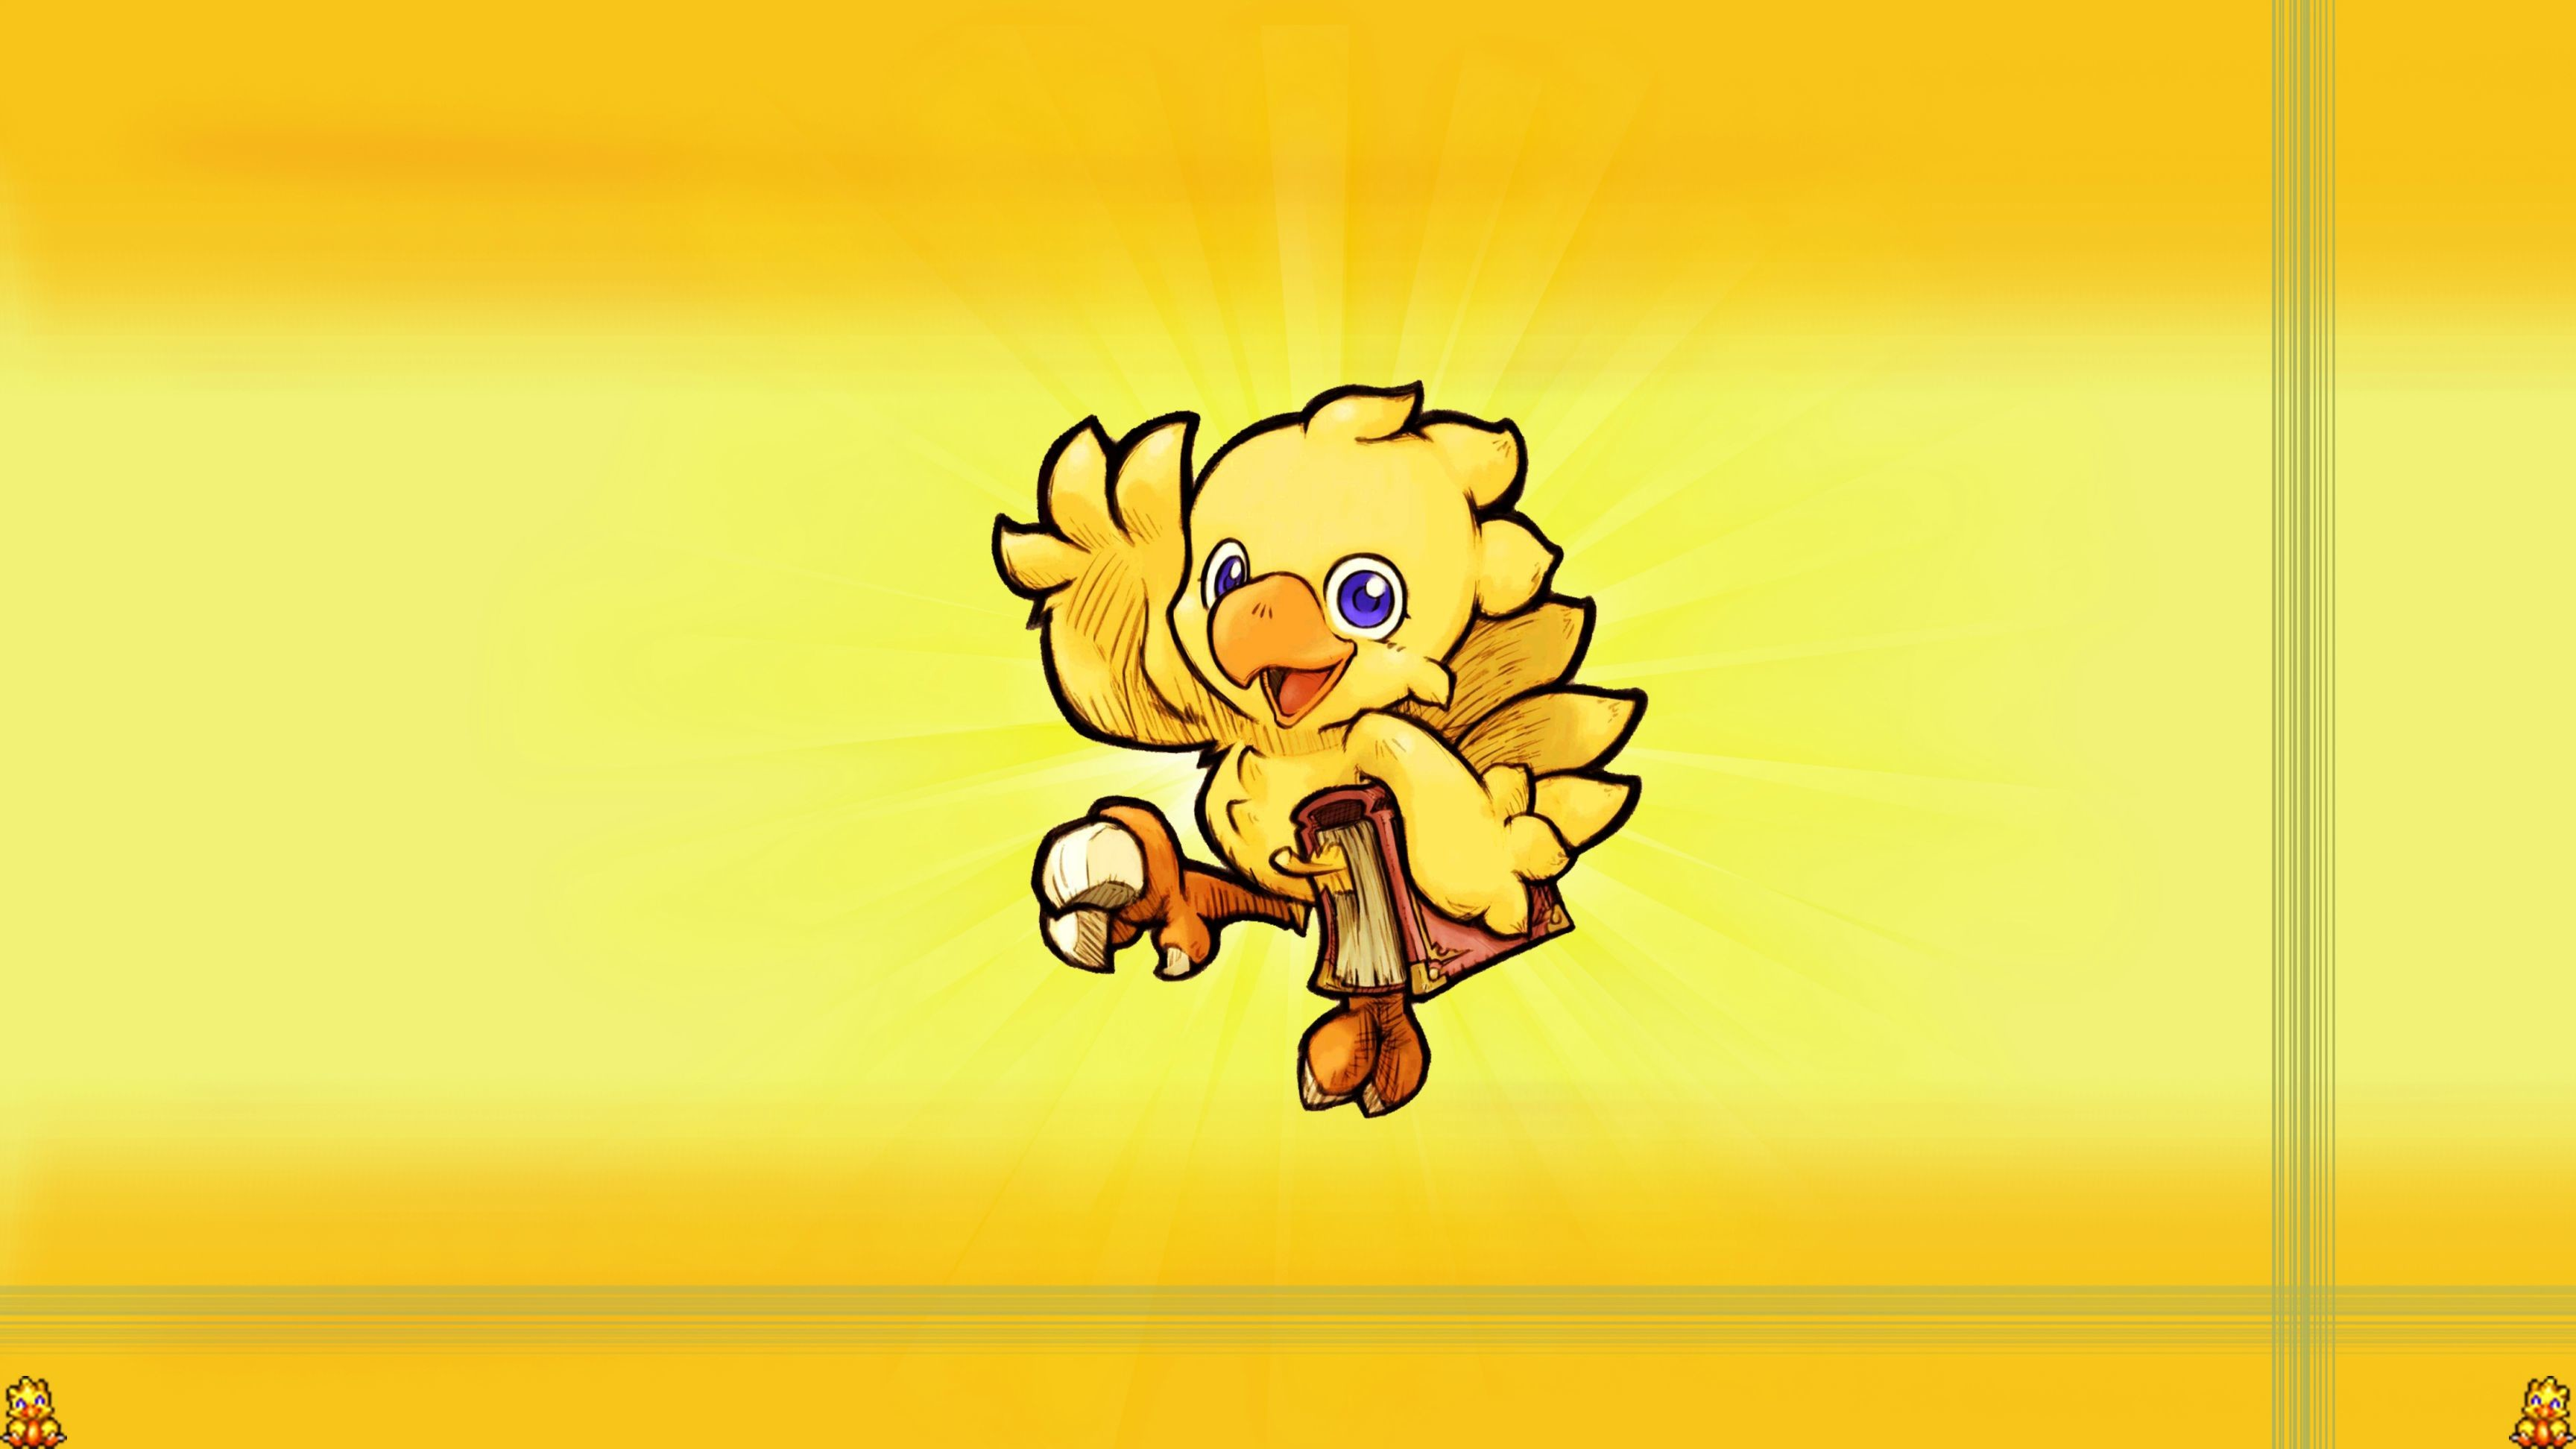 Res: 3456x1944, Threw together a quick chocobo wallpaper, hope you guys like it!